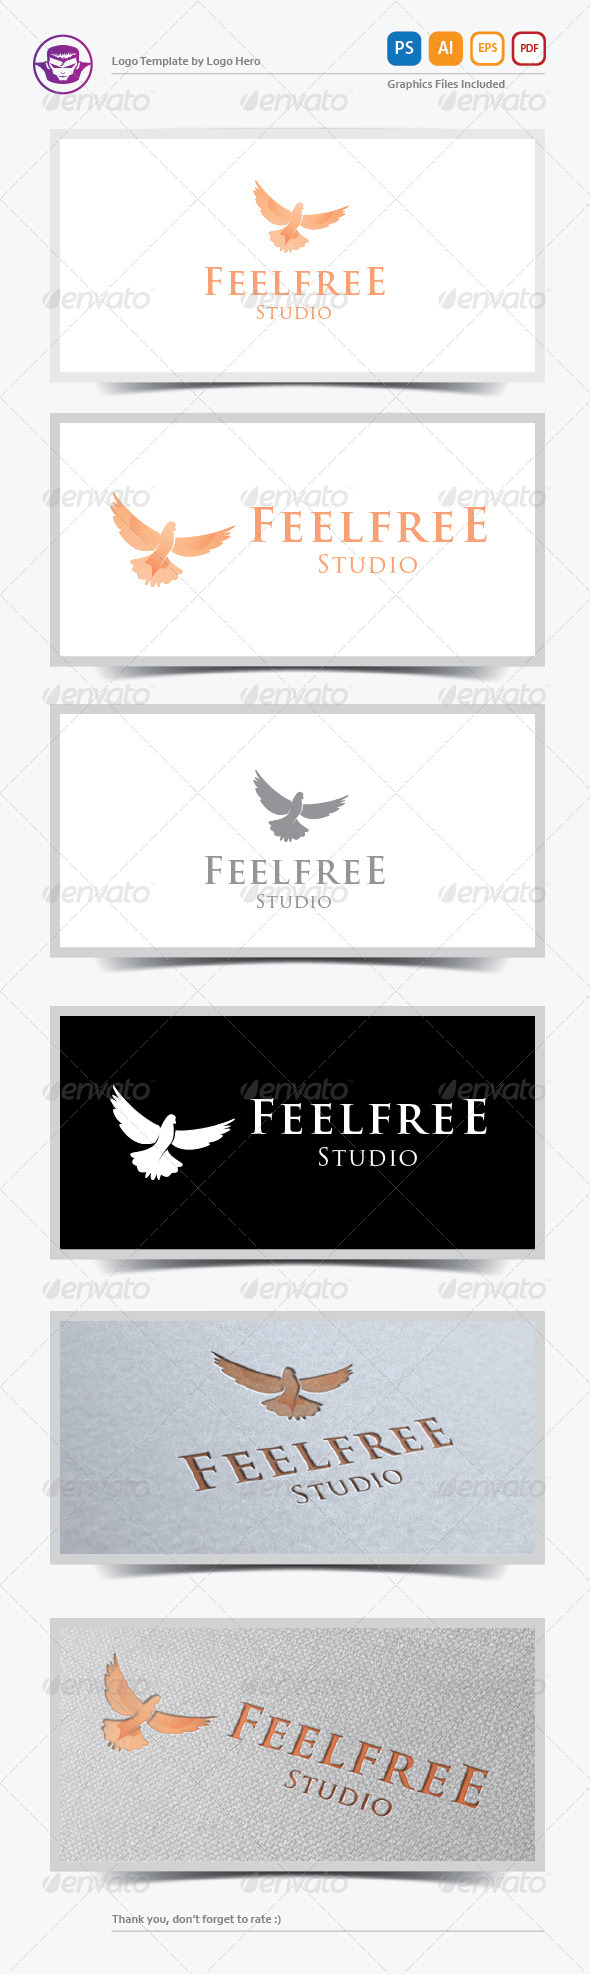 GraphicRiver Feel Free Logo Template 5874179